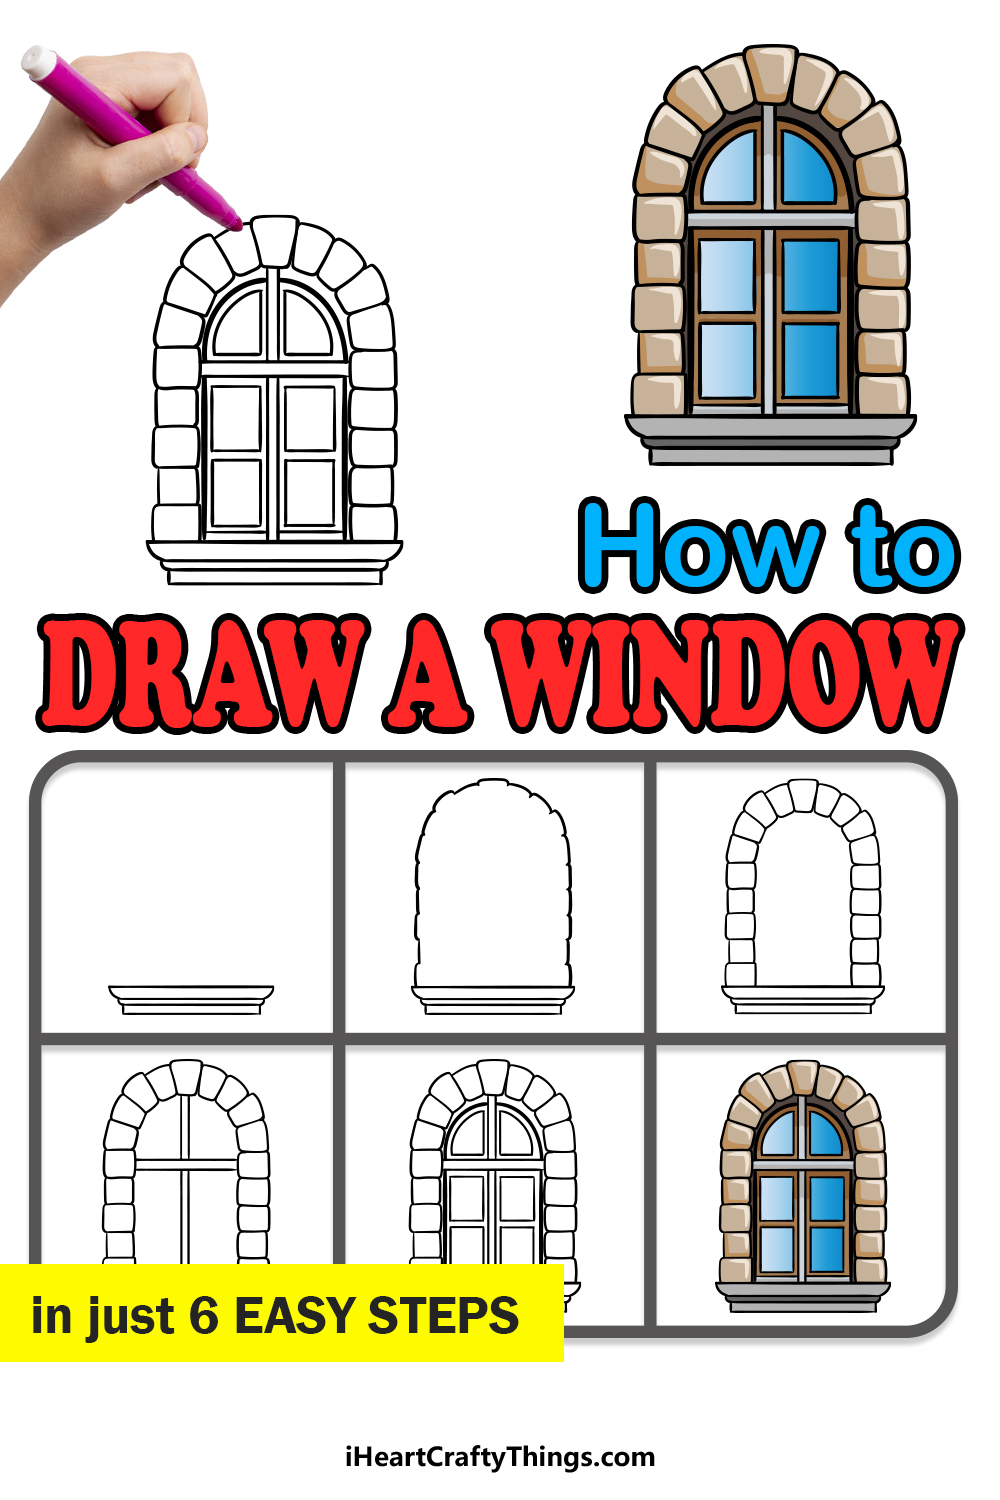 how to draw a window in 6 easy steps